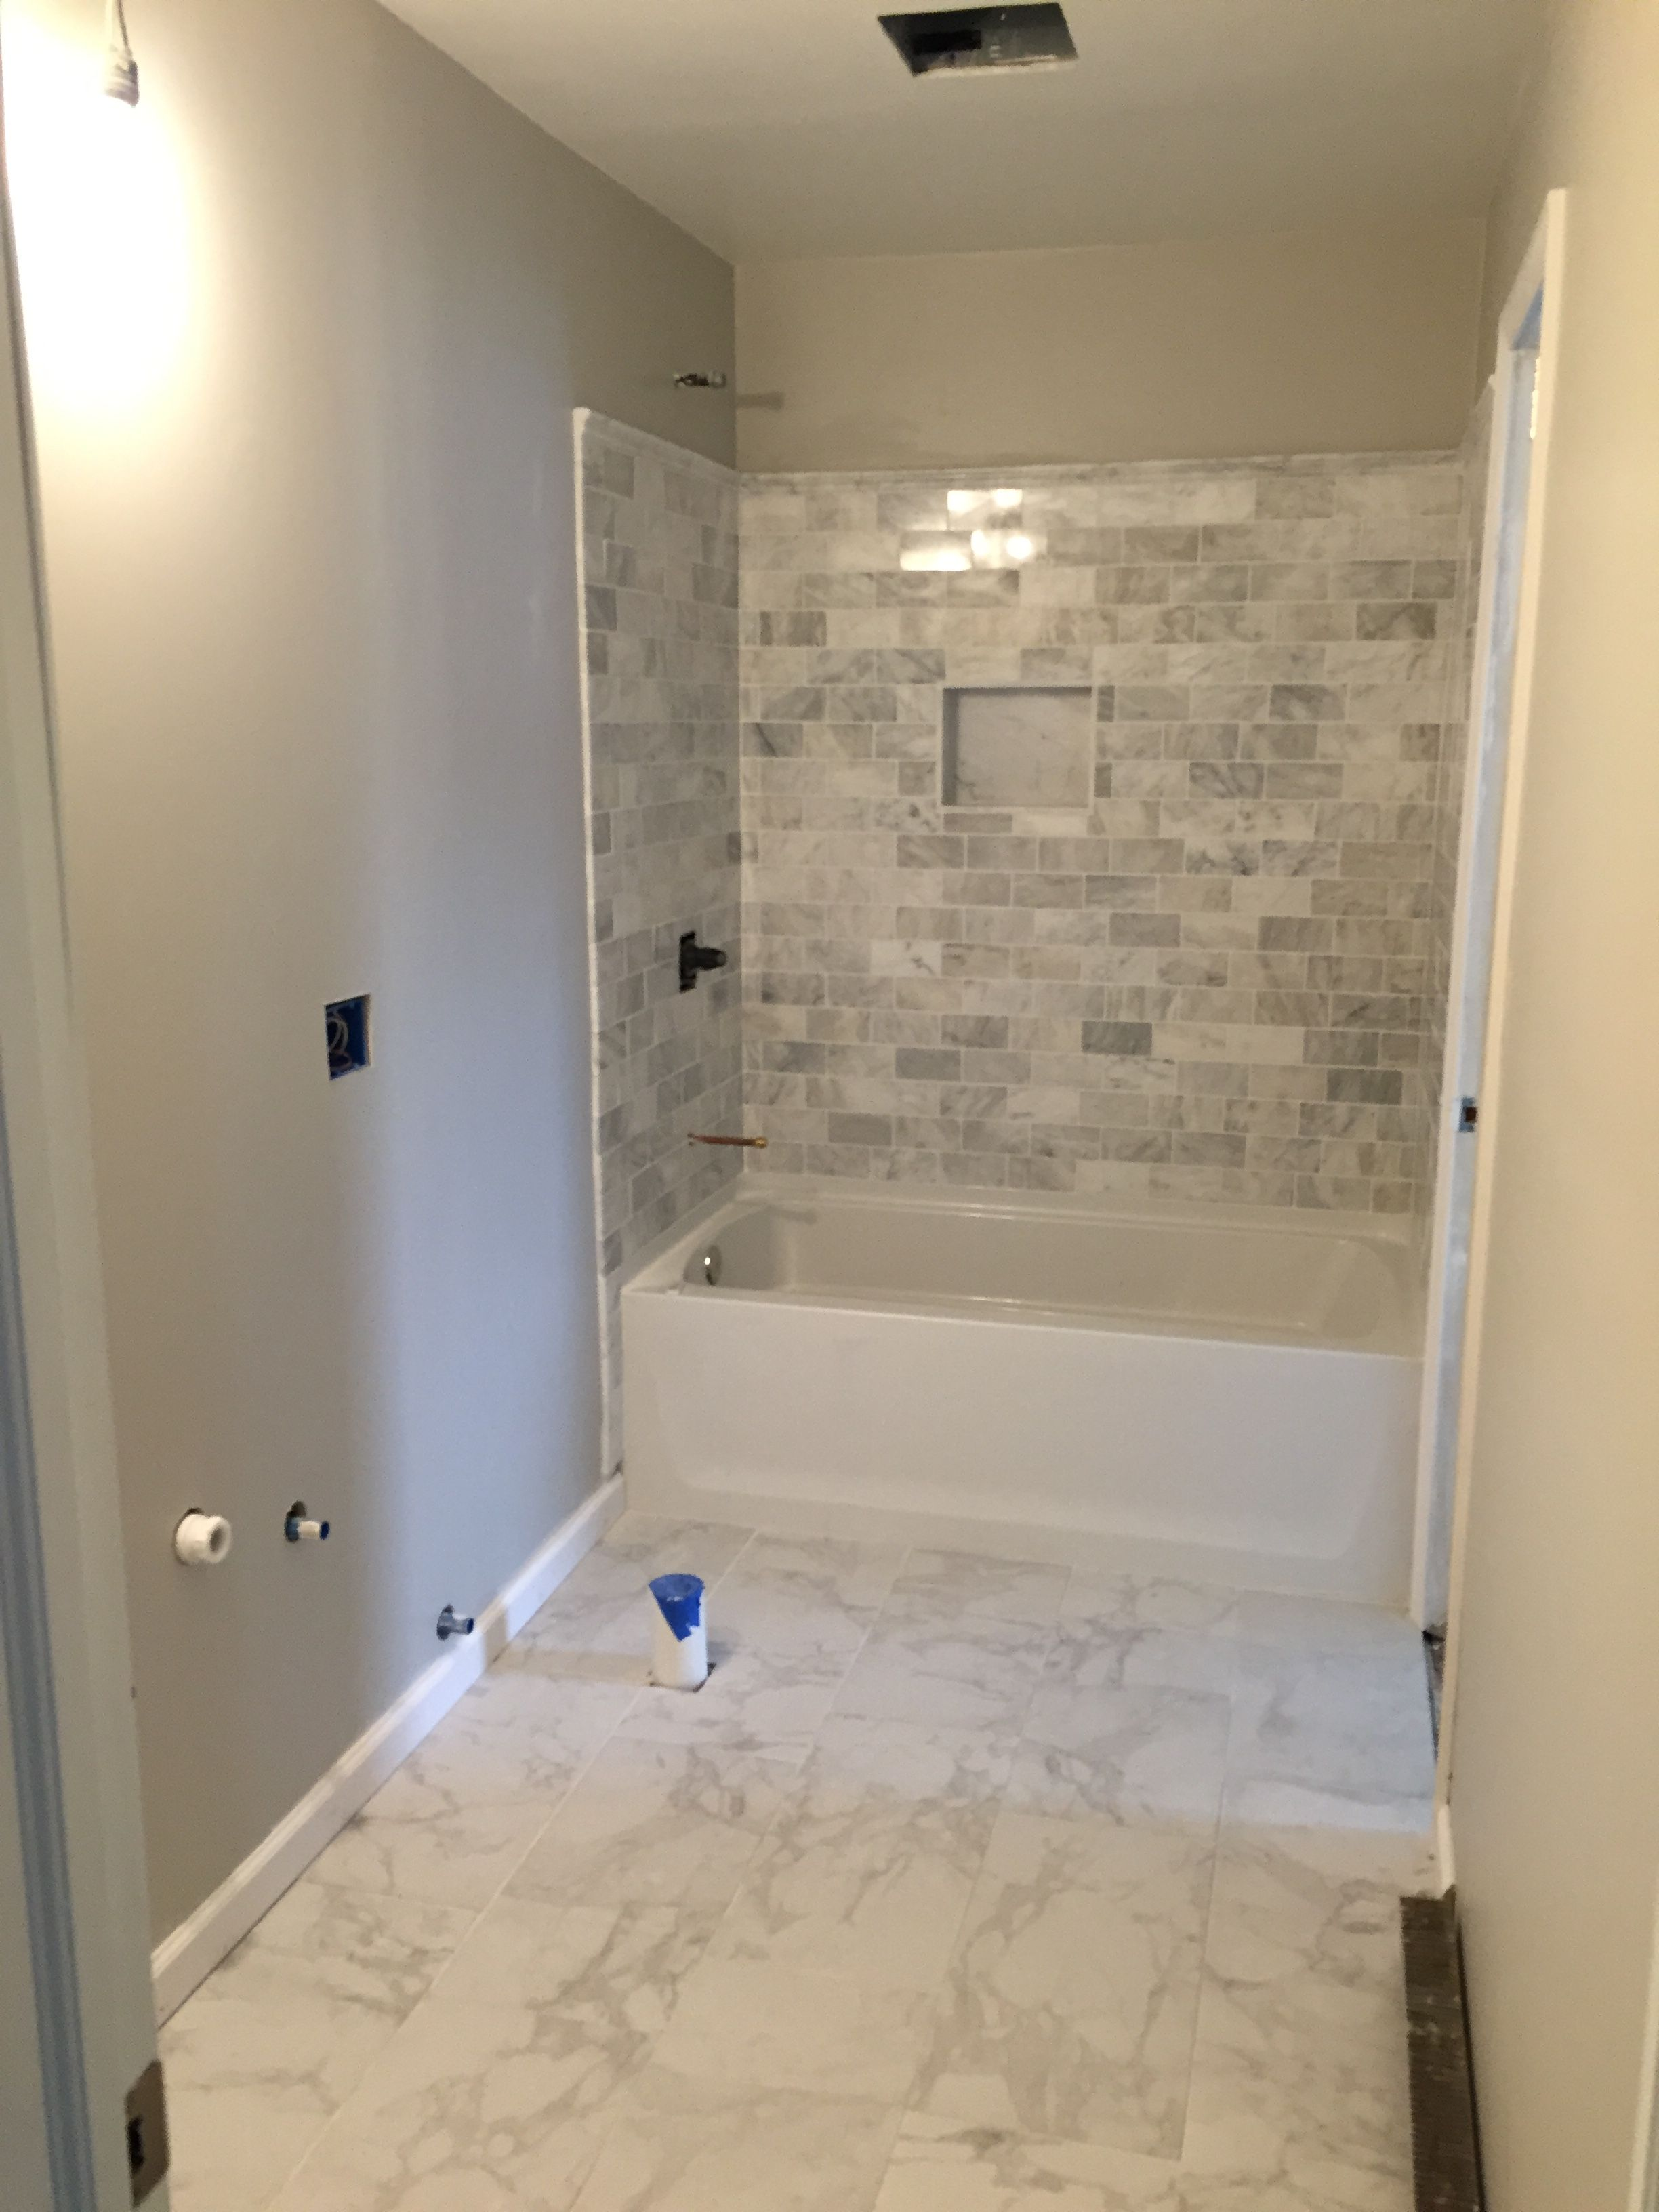 Https M Lowes Com Pd Anatolia Tile 8 Pack Venatino Polished Subway Marble Wall Tile Common 3 In X 6 I Bathrooms Remodel Lowes Bathroom Small Bathroom Remodel